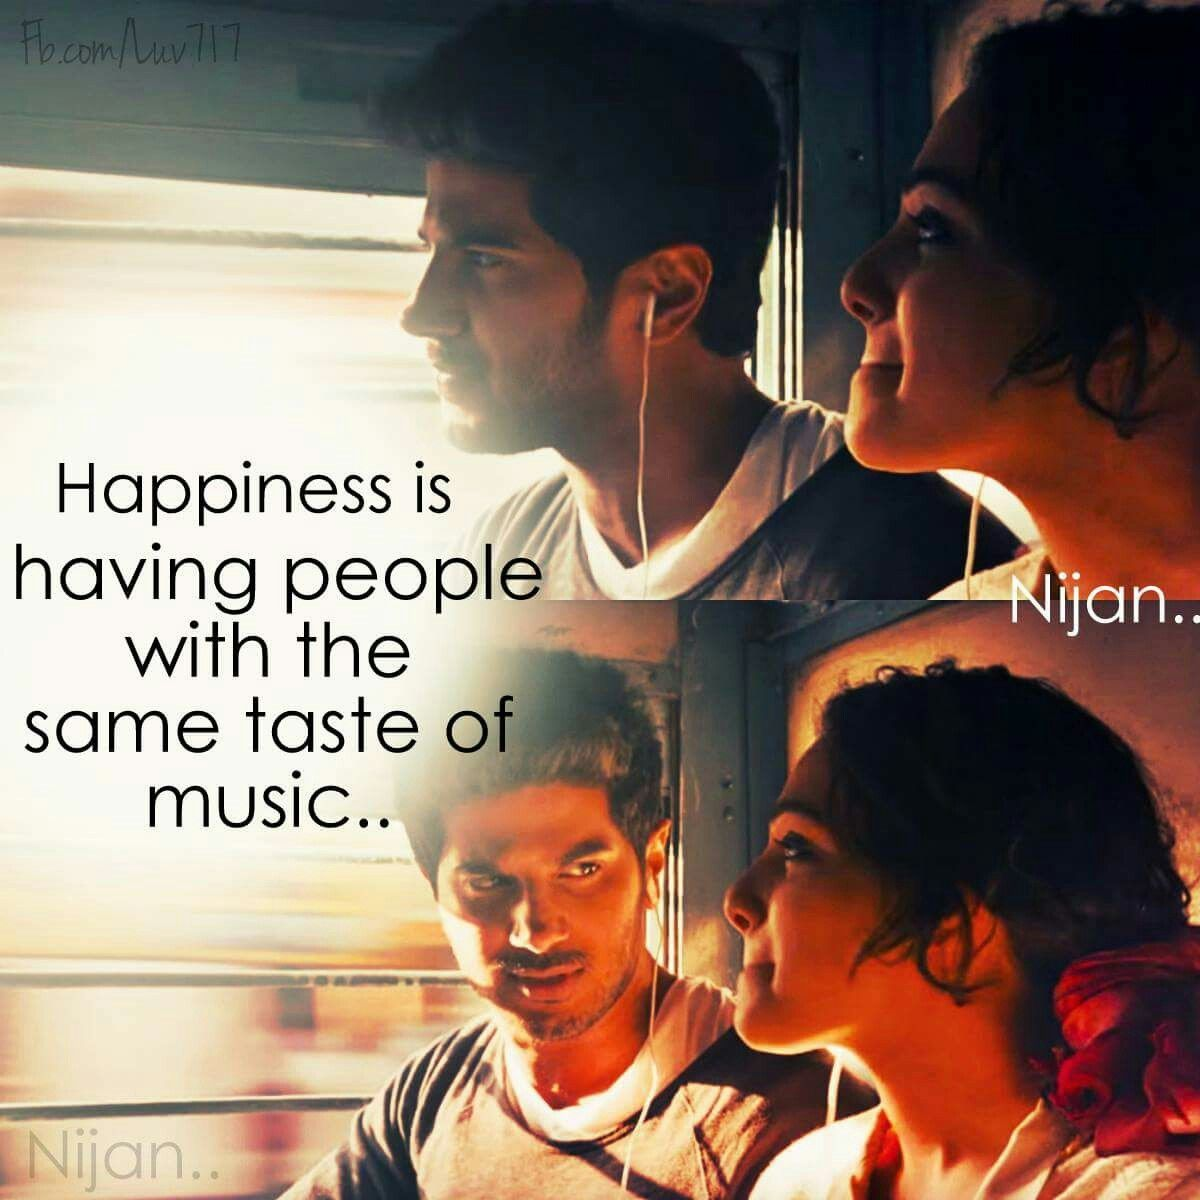 Movie Love Quotes Favorite Movie Quotes Funny Quotes Movie Memes Life Quotes Happiness Cinema Quotes About Life making